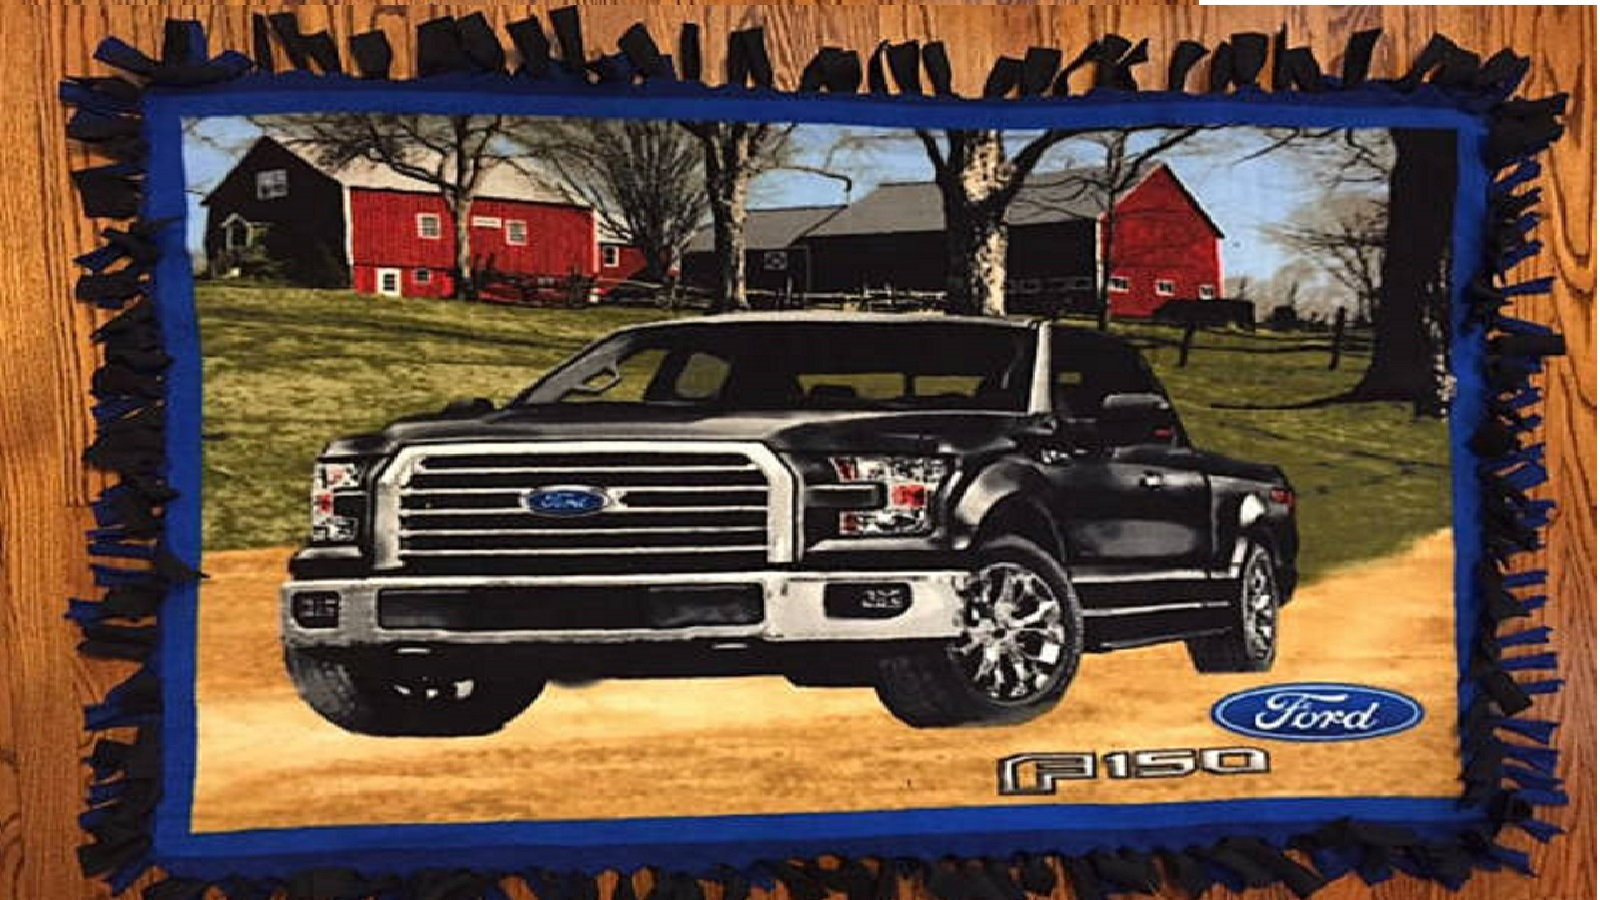 Promote warmth with a Ford truck fleece blanket.